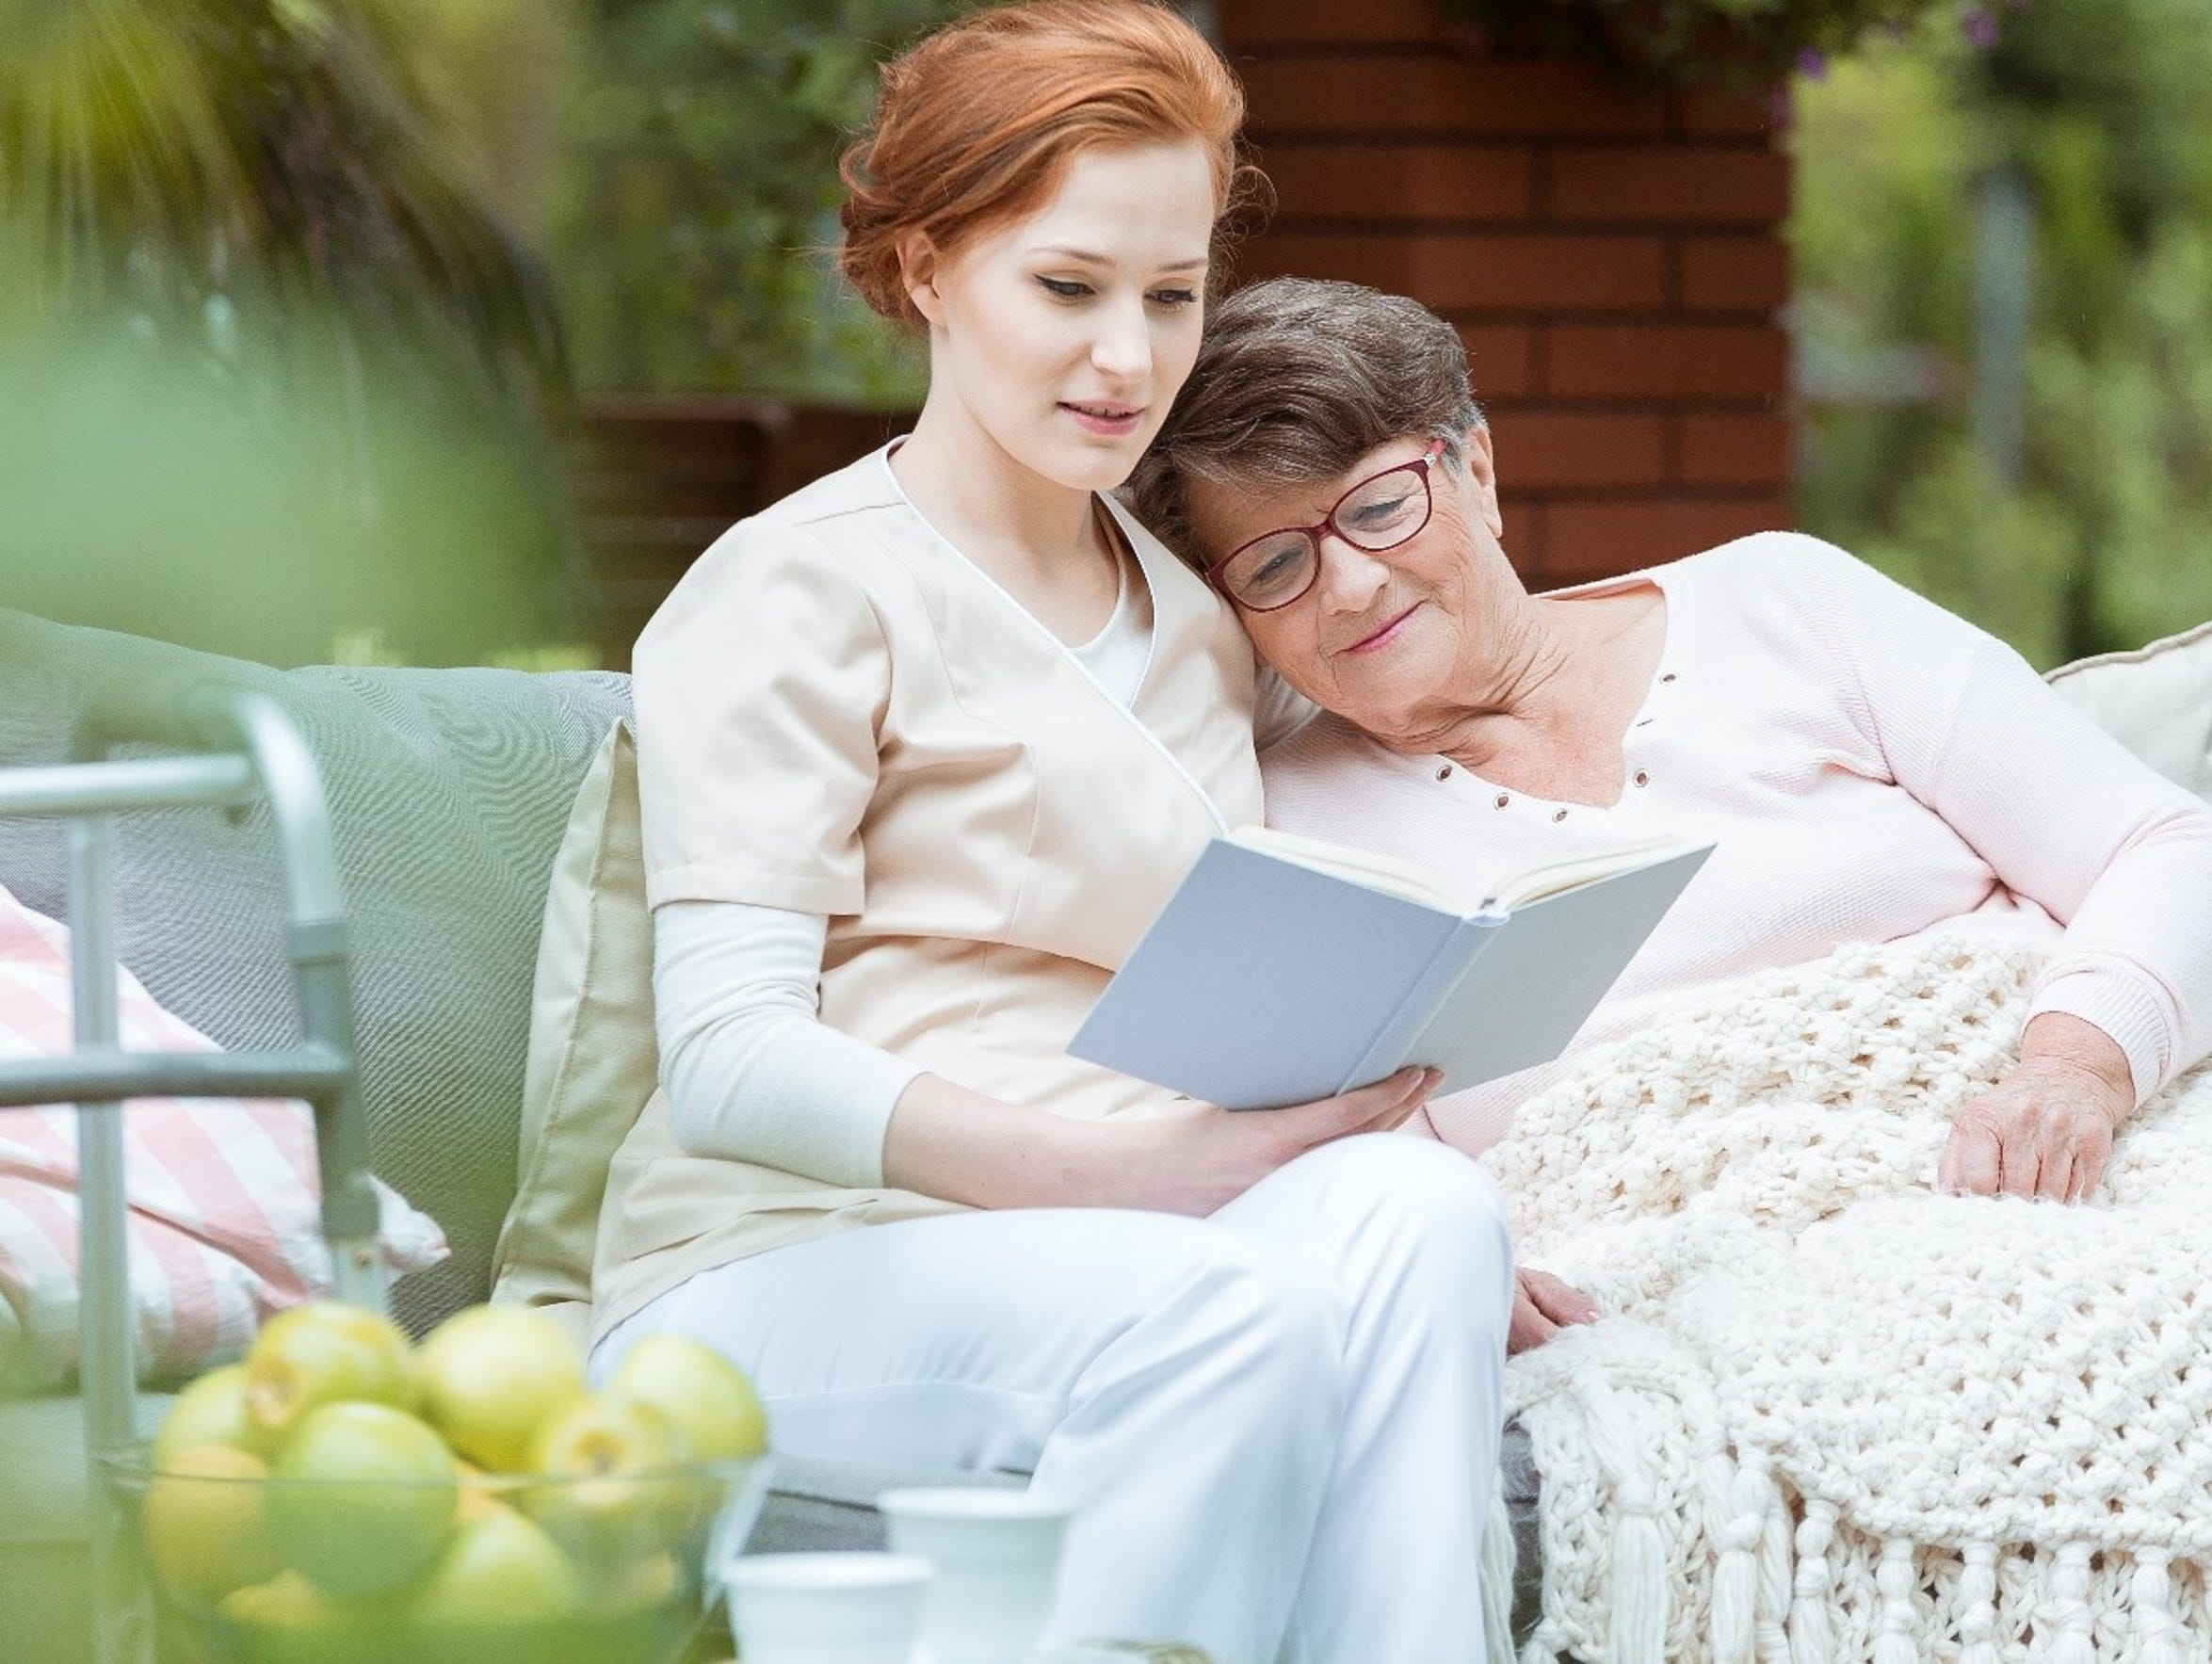 Hospice can allow patients and their families better